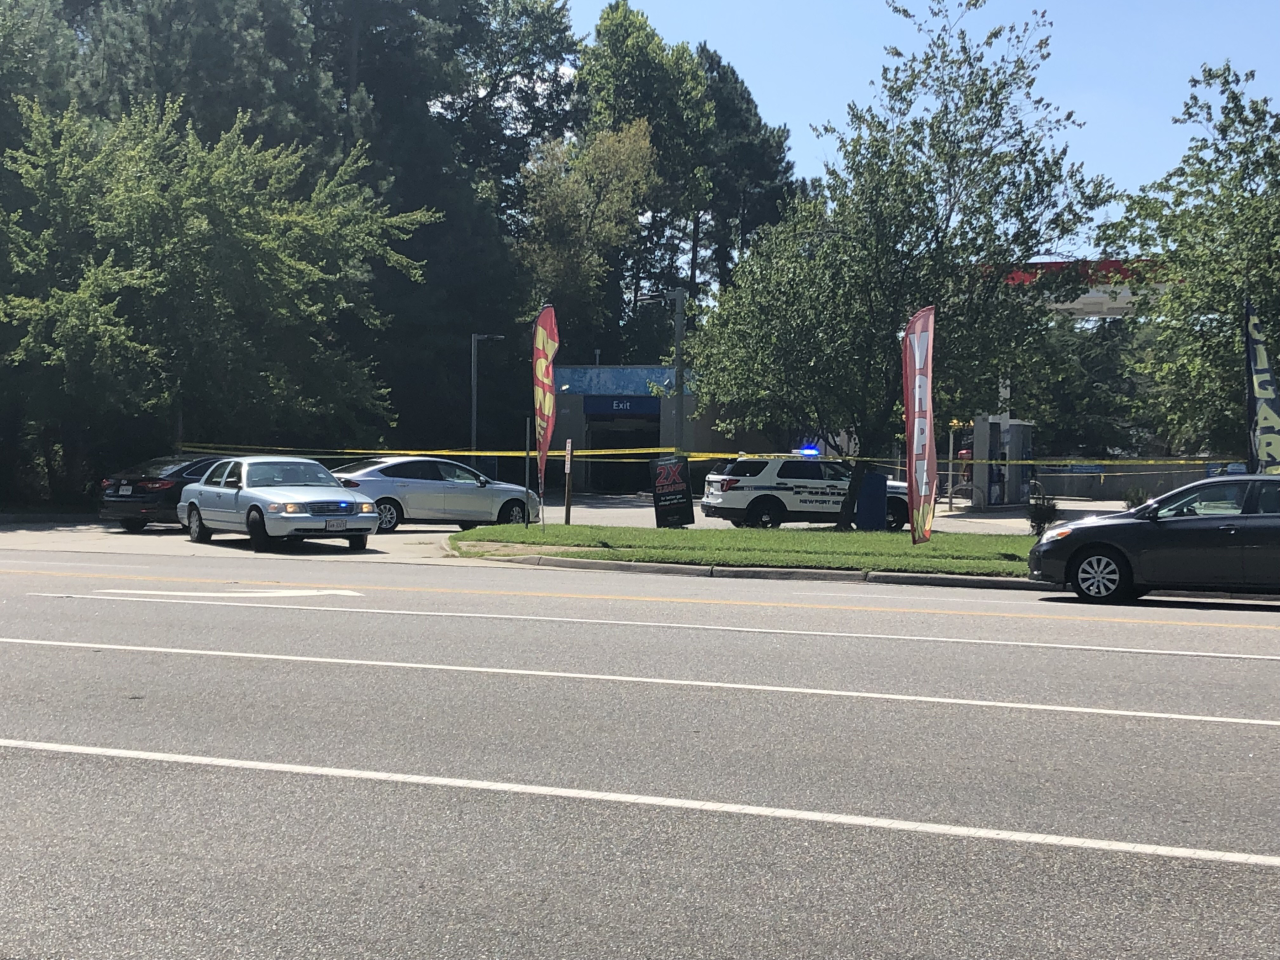 Photos: Suspect in custody after man killed in Newport News shooting